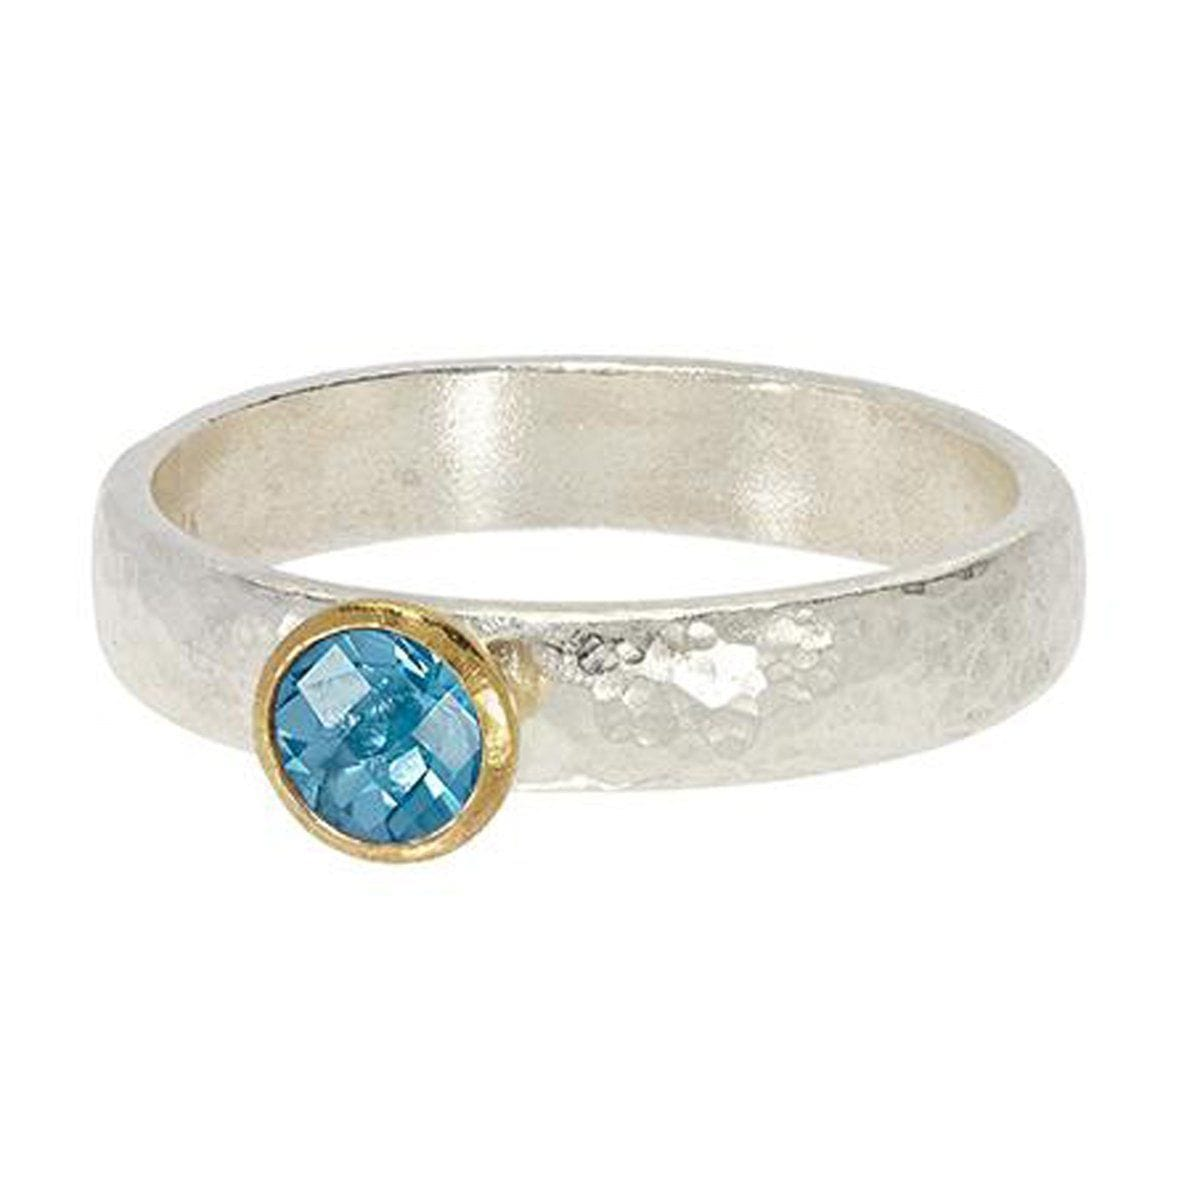 Round Blue Topaz Skittle Ring - SR-390-BT5-RD-GURHAN-Renee Taylor Gallery